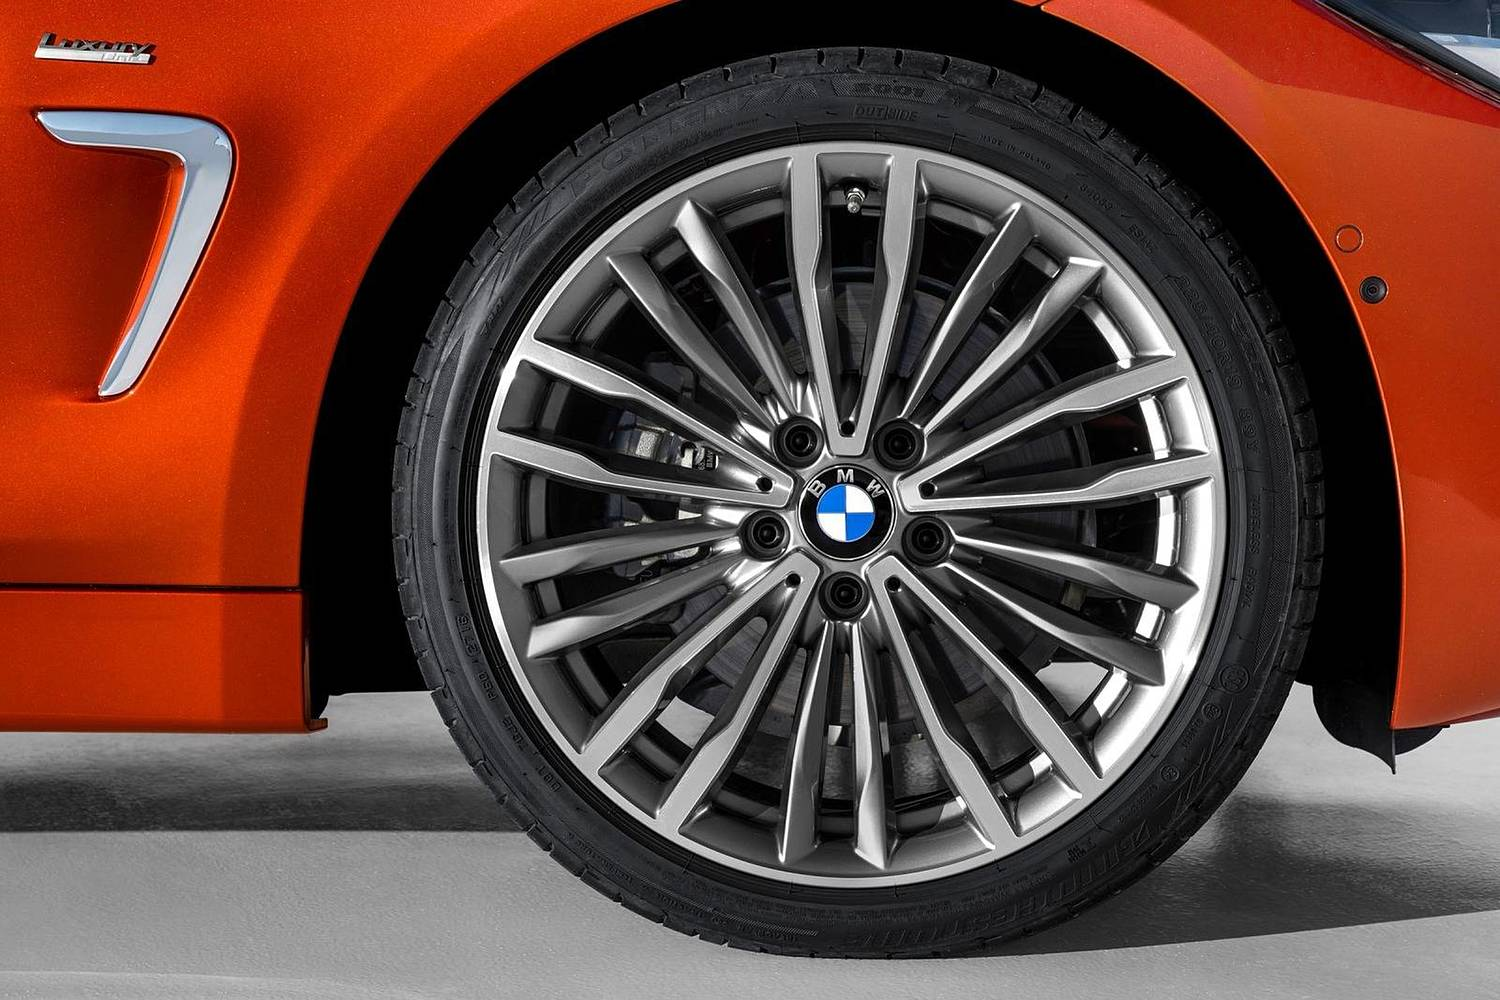 2018 BMW 4 Series 430i SULEV Convertible Wheel. European Model with Executive Package Shown.